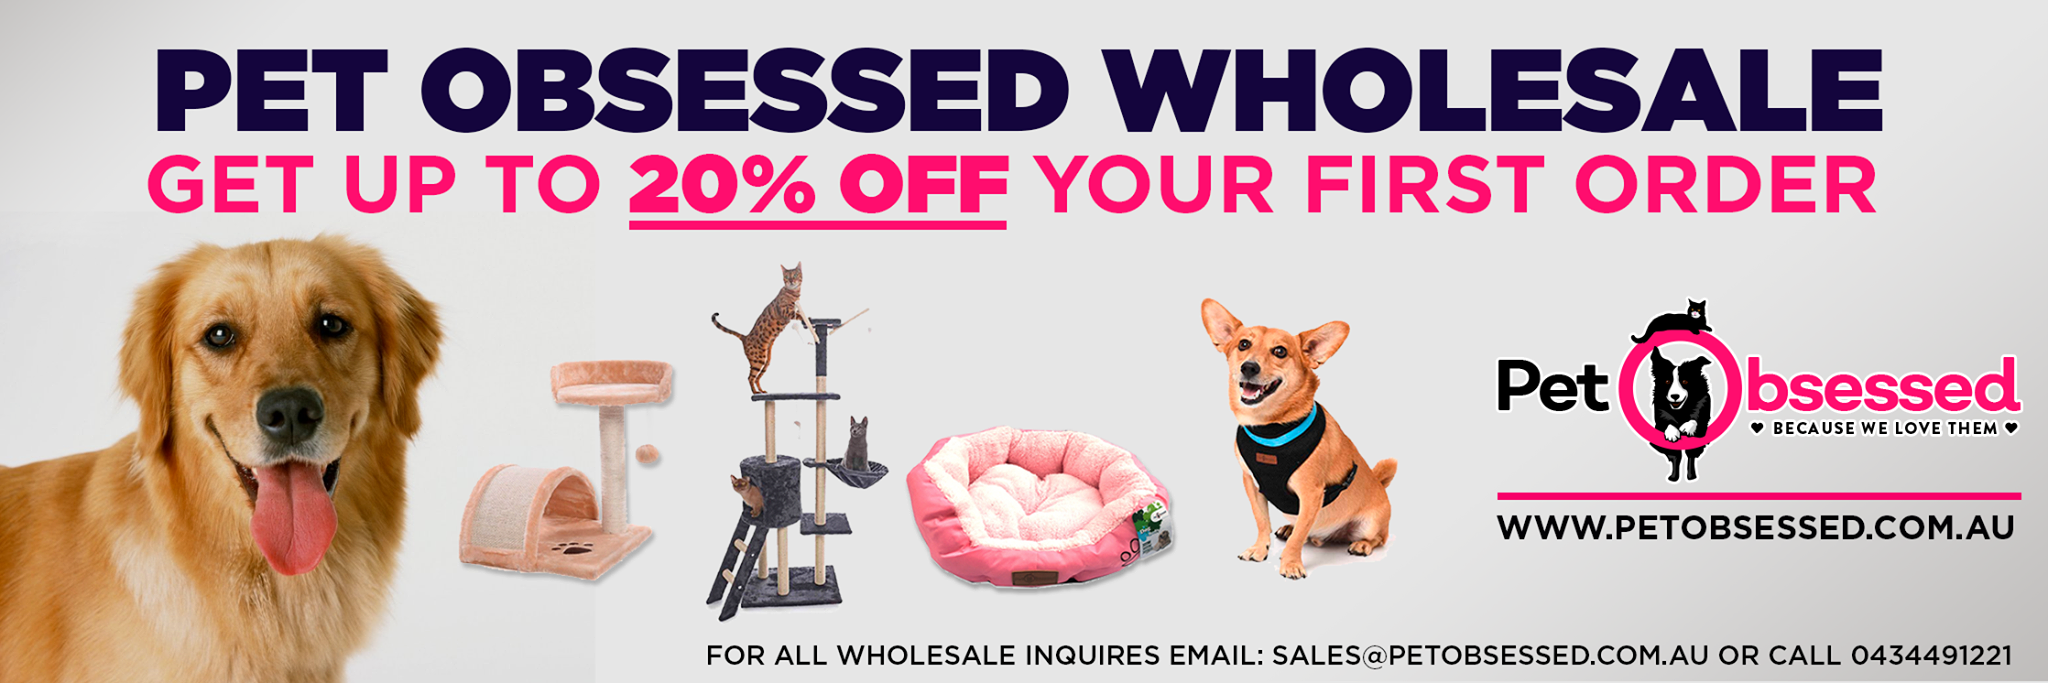 wholesale-banner.png